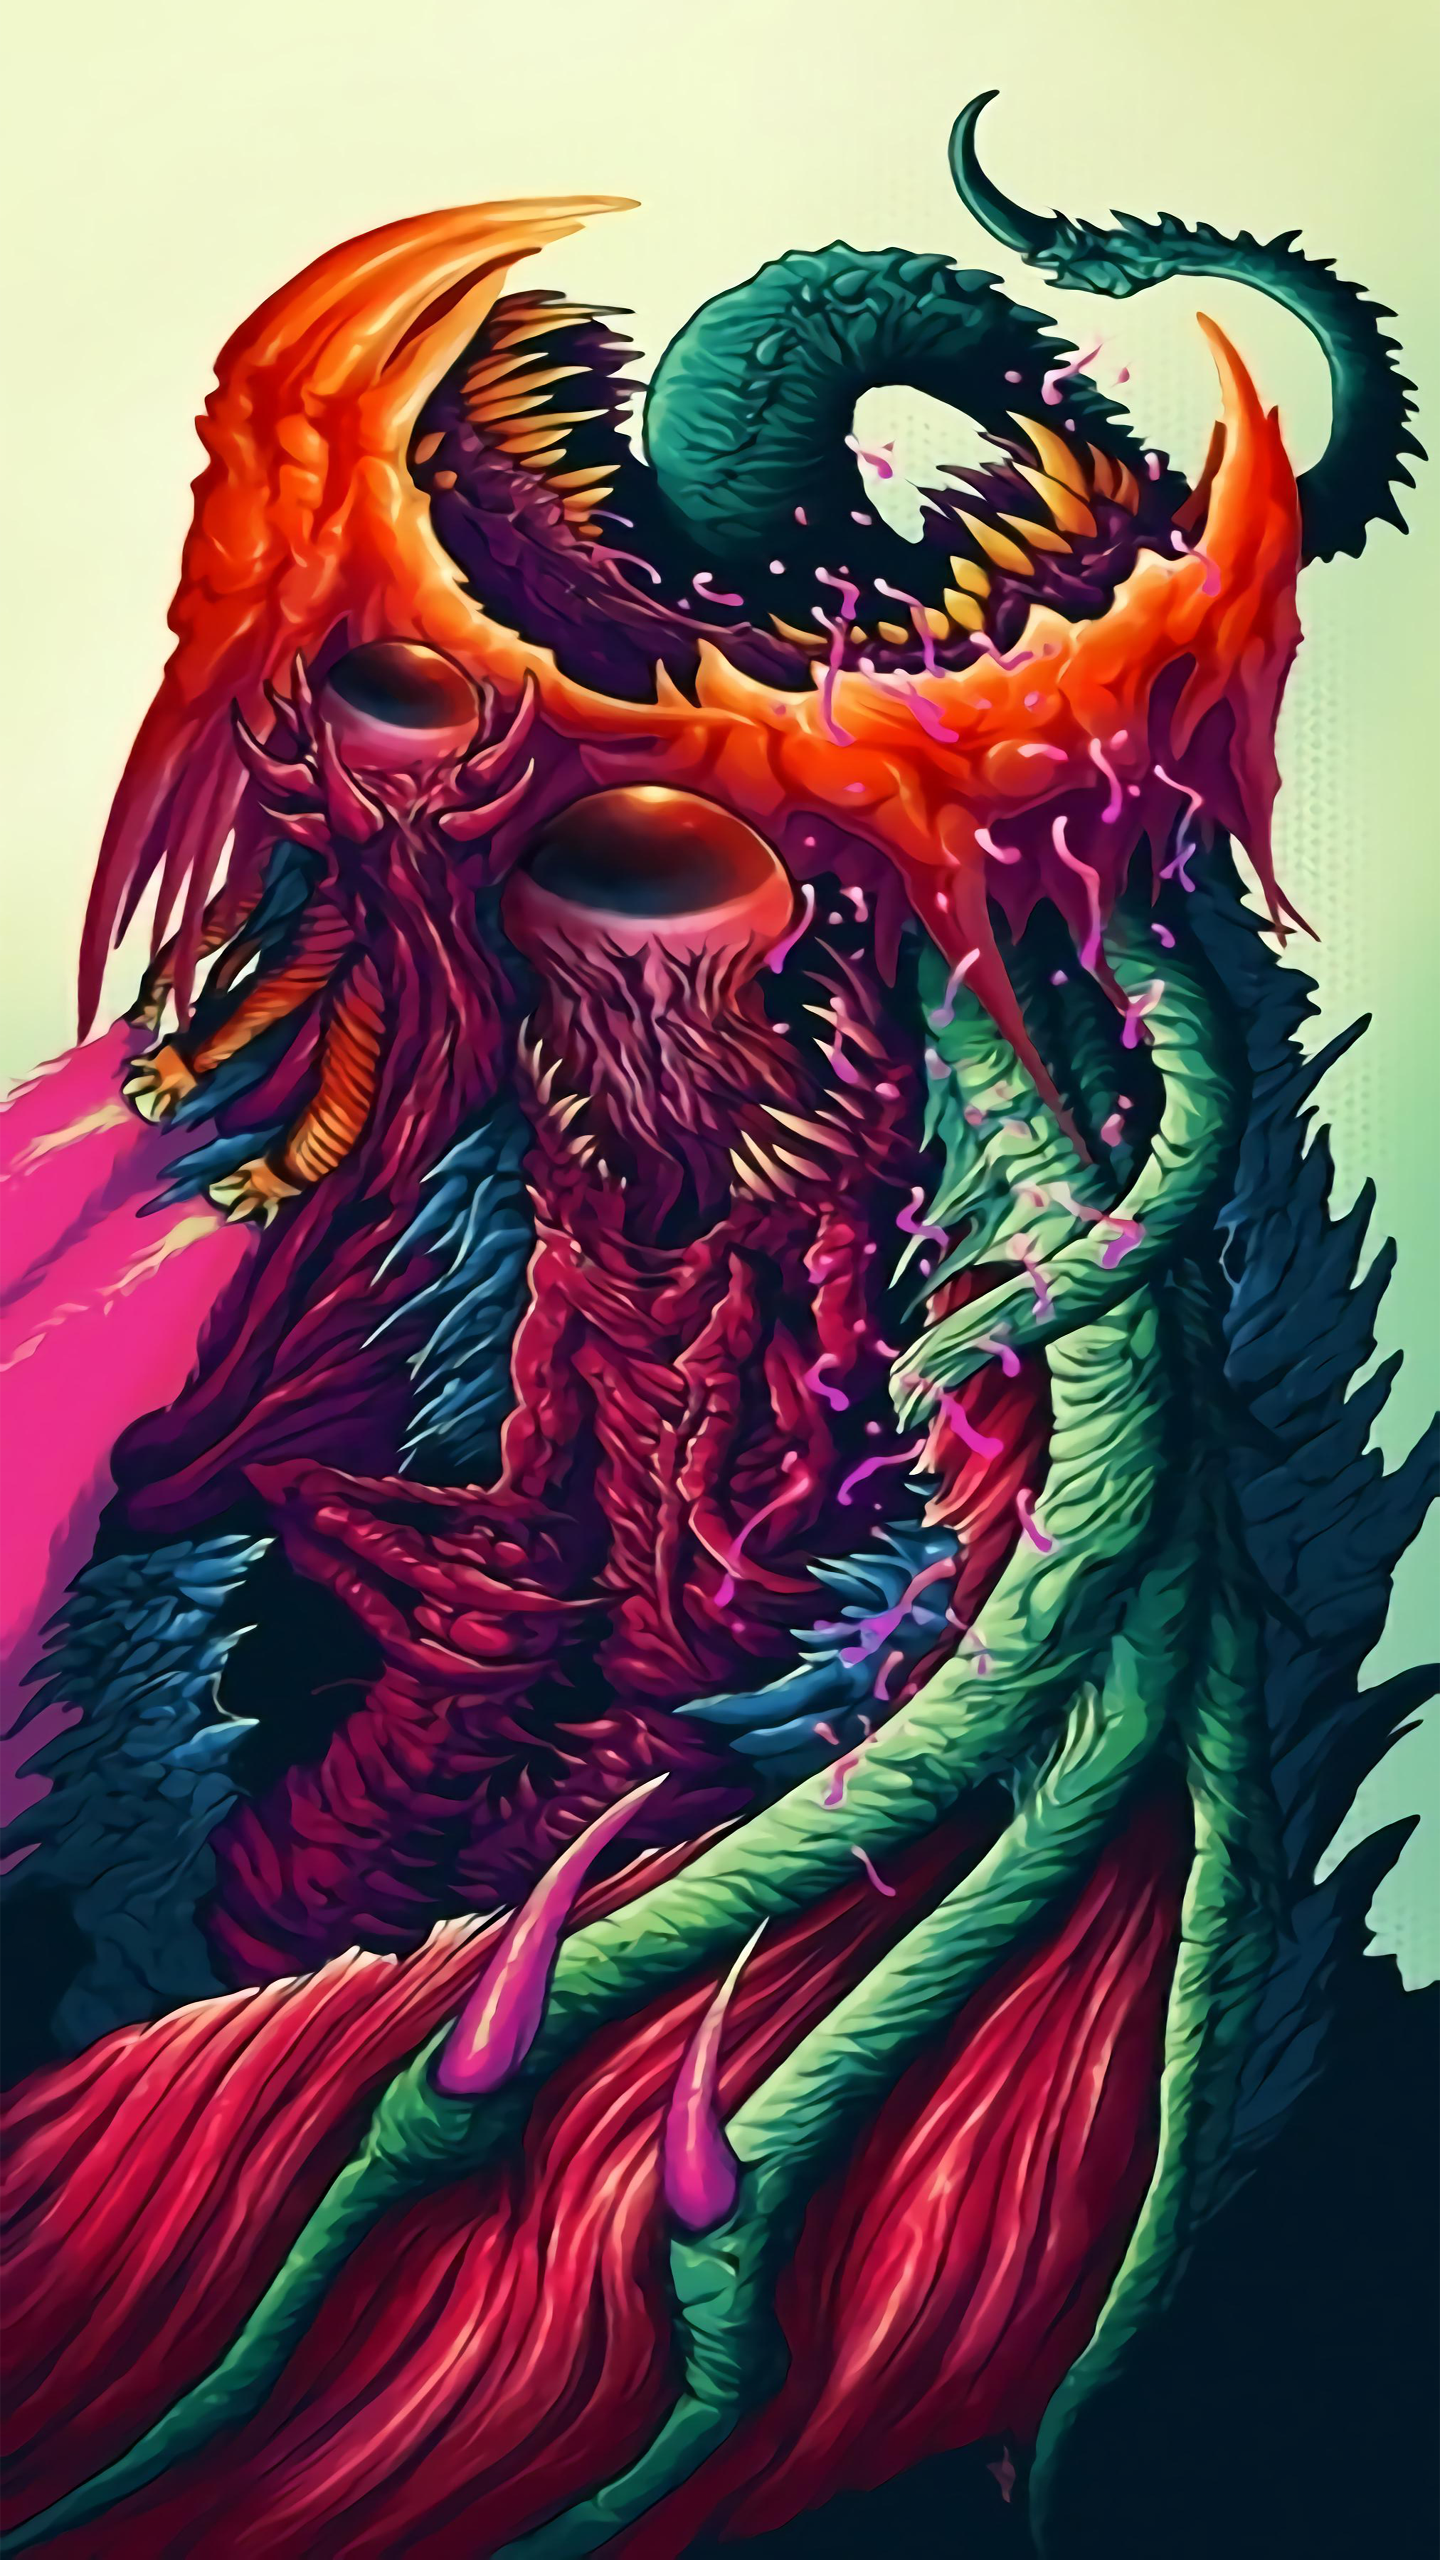 Hyperbeast Phone Wallpaper Image By Rolcsi052